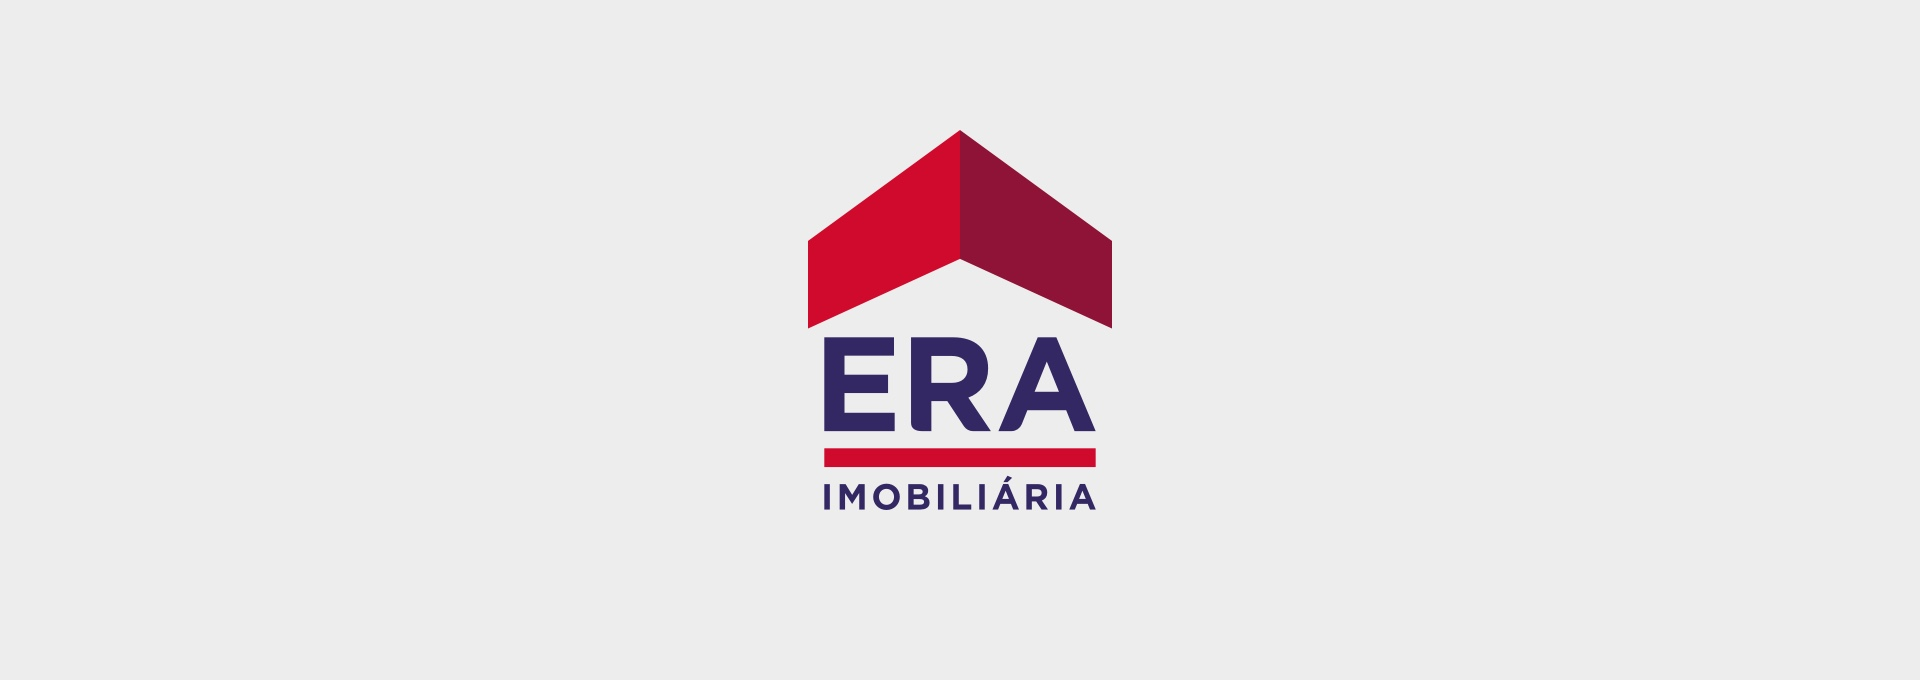 Real estate land / Vila Nova de Gaia, G1 - Miramar